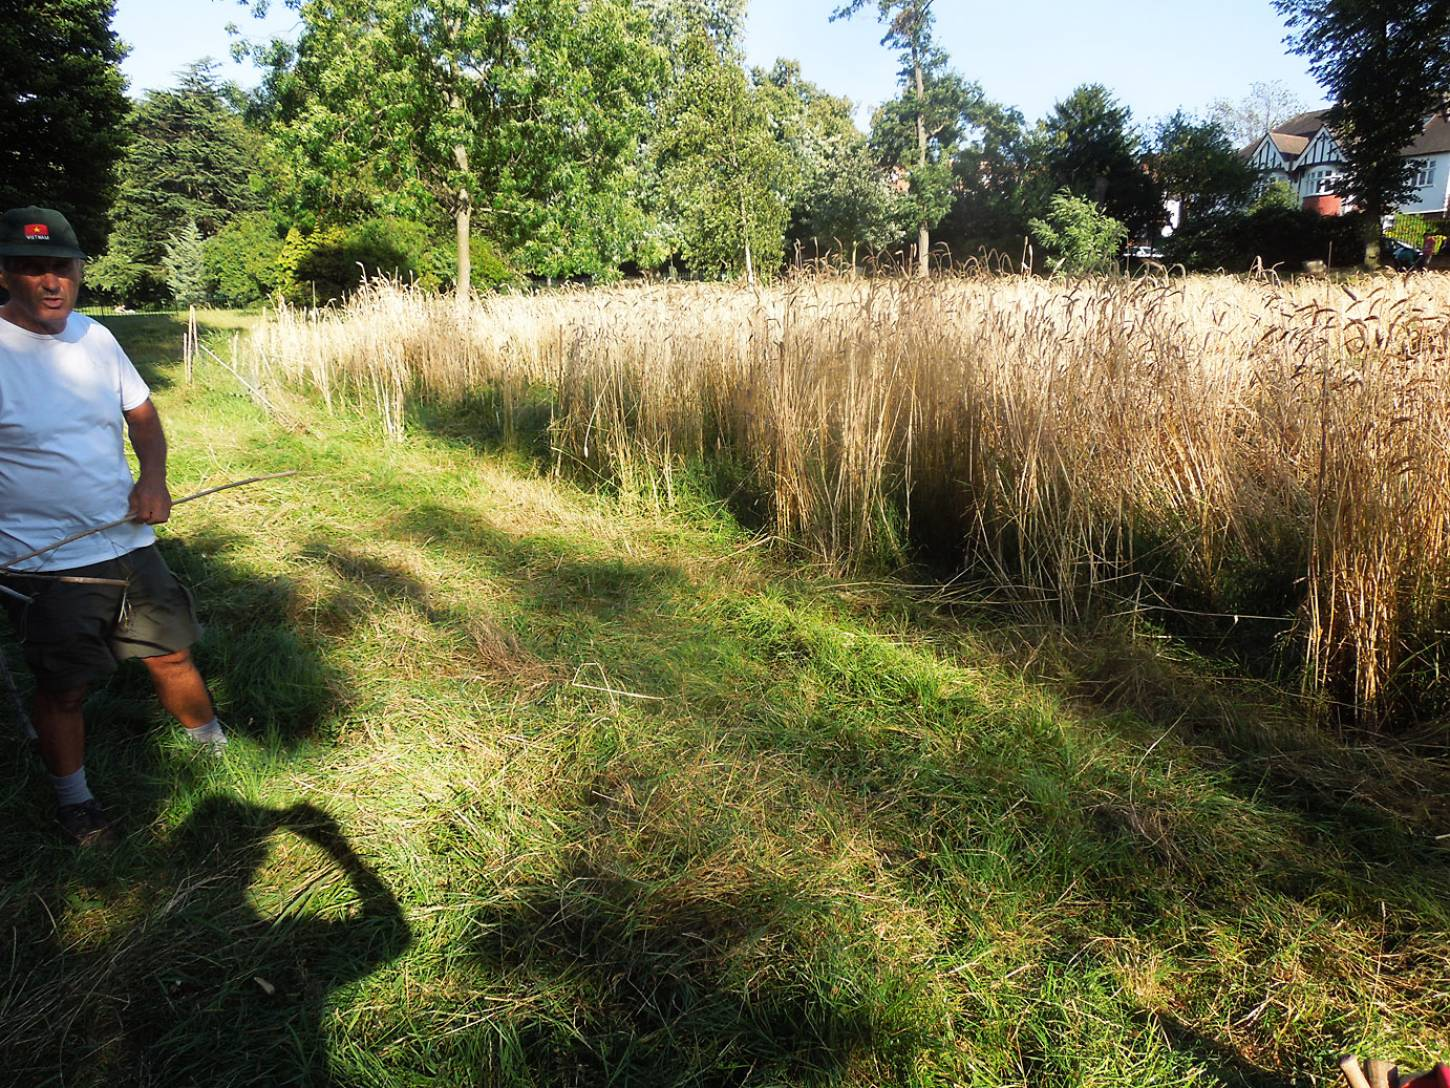 ready for harvest with chair of Friends of Ruskin Park, David Whyte, pre-harvest review, Ruskin Park - 6:10pm&nbsp;7<sup>th</sup>&nbsp;Aug.&nbsp;'16